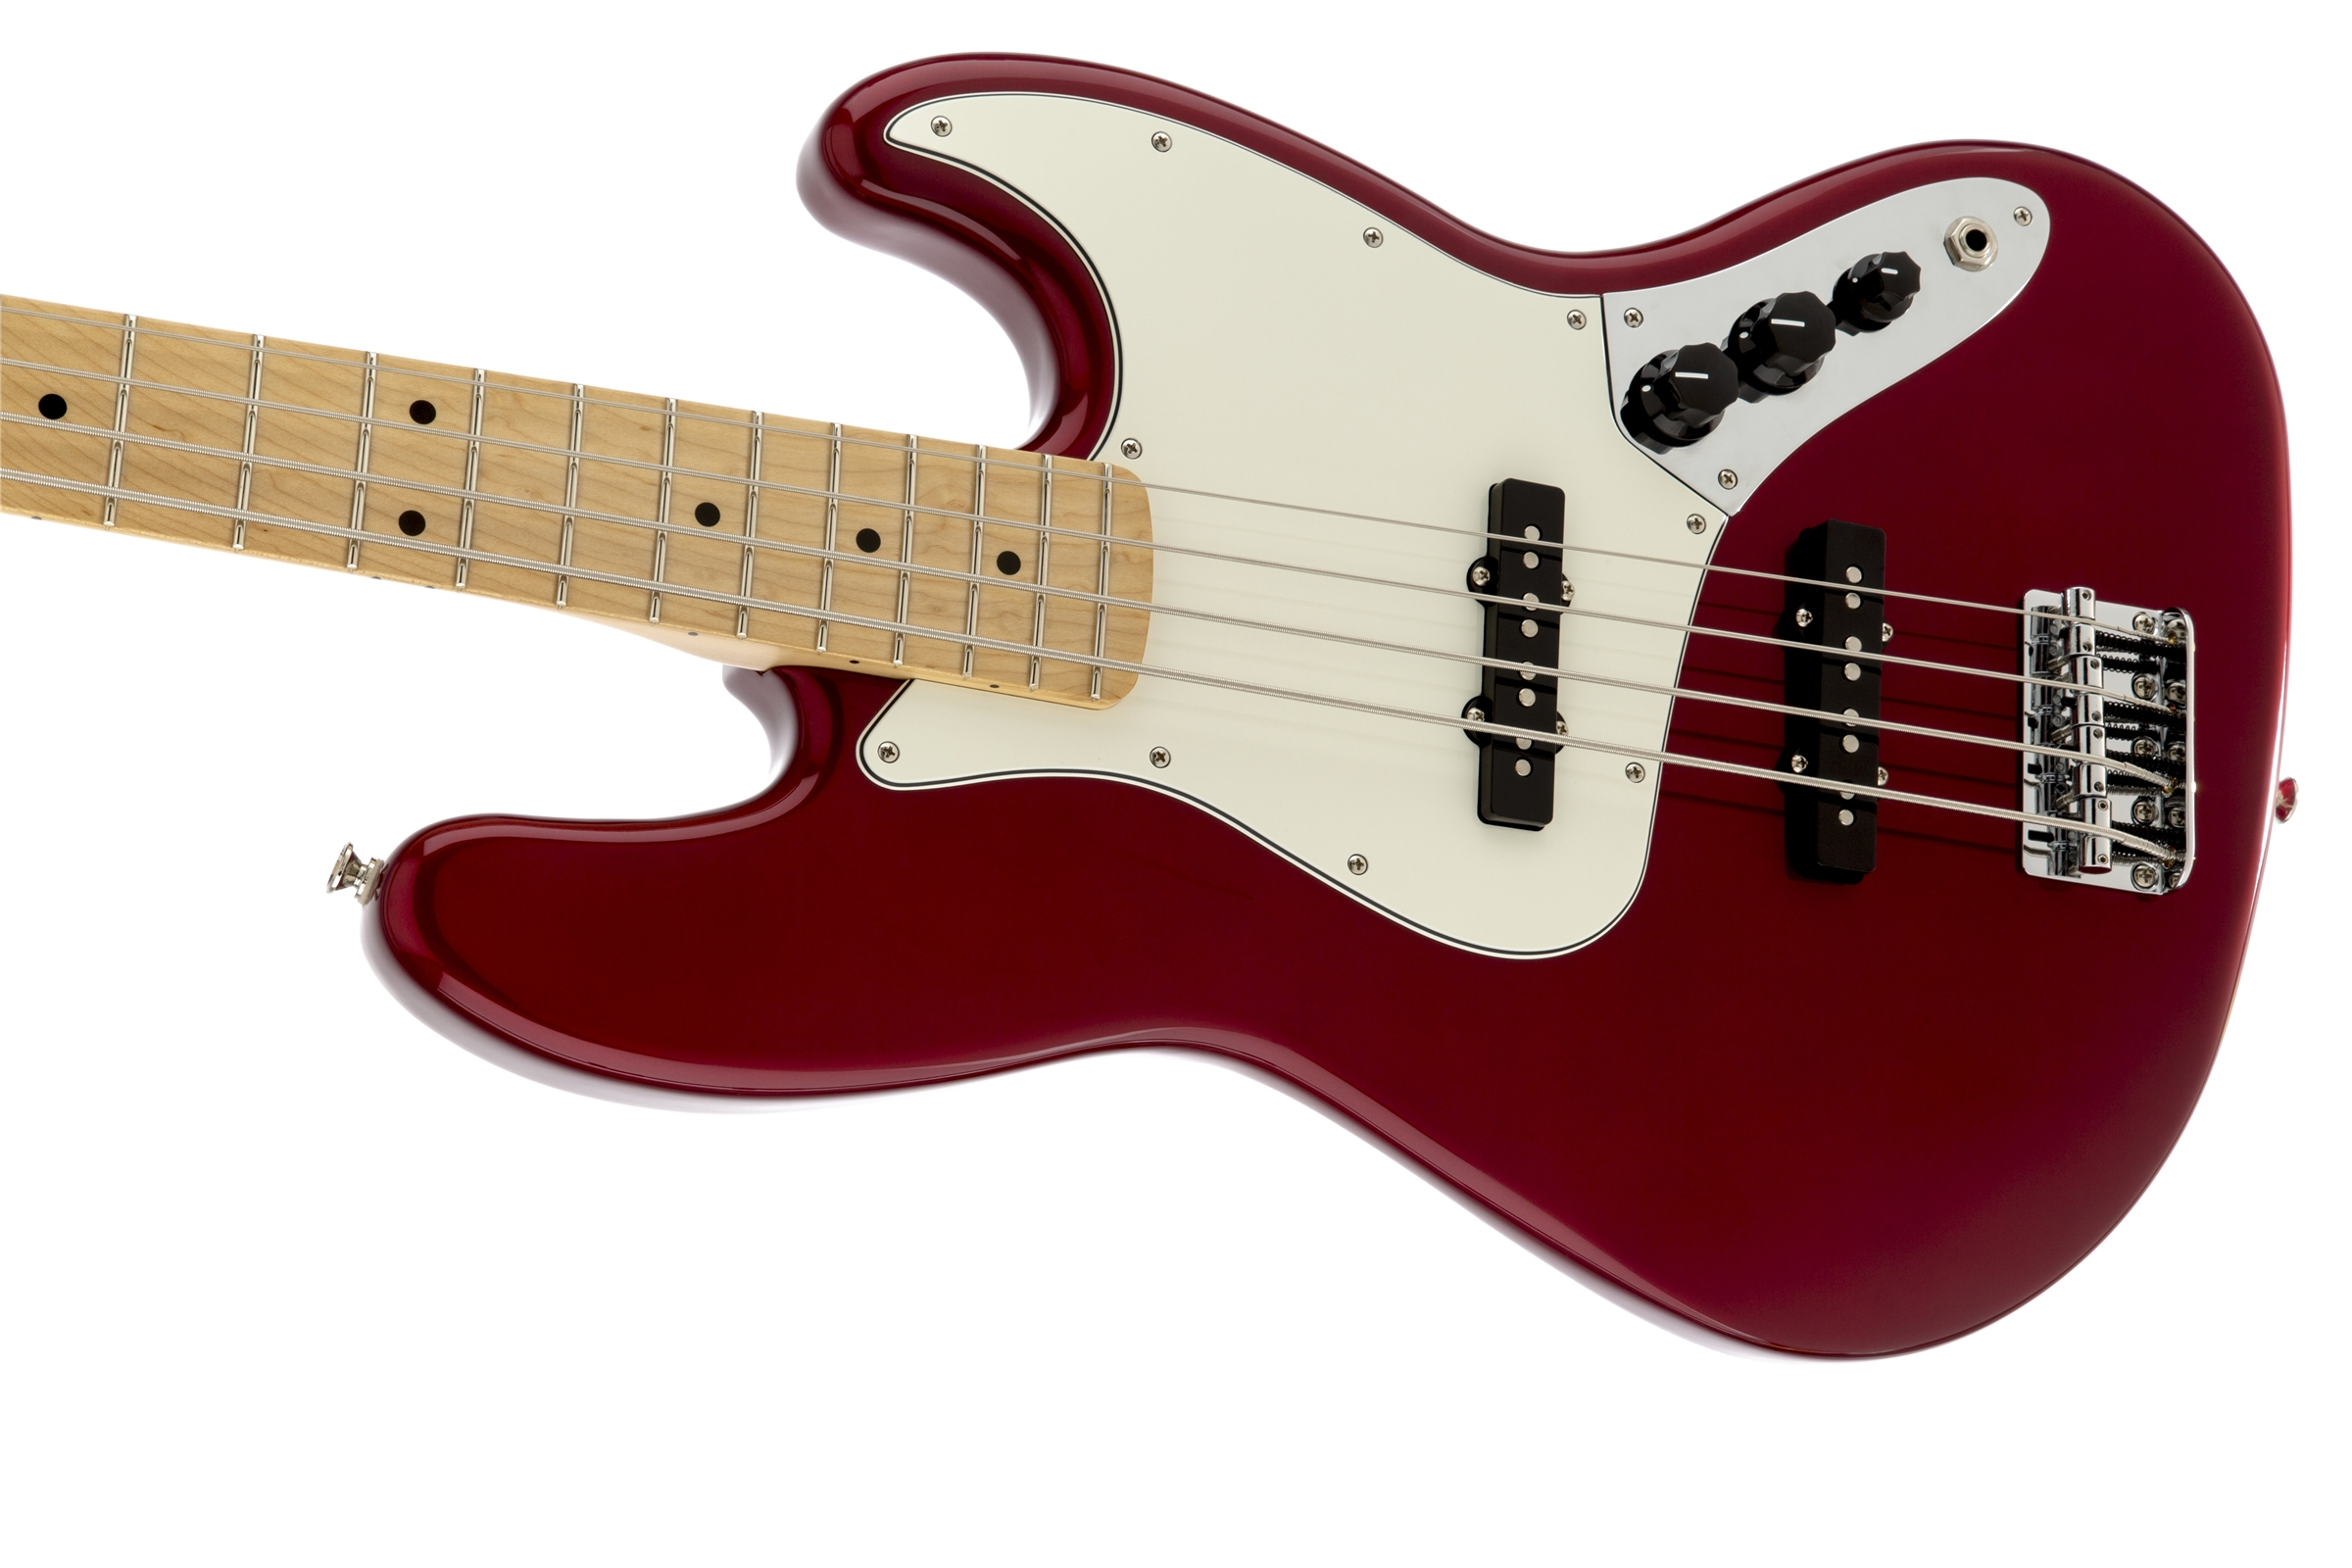 Fender Standard Jazz Bass® Candy Apple Red Maple Fingerboard Electric Bass Guitar